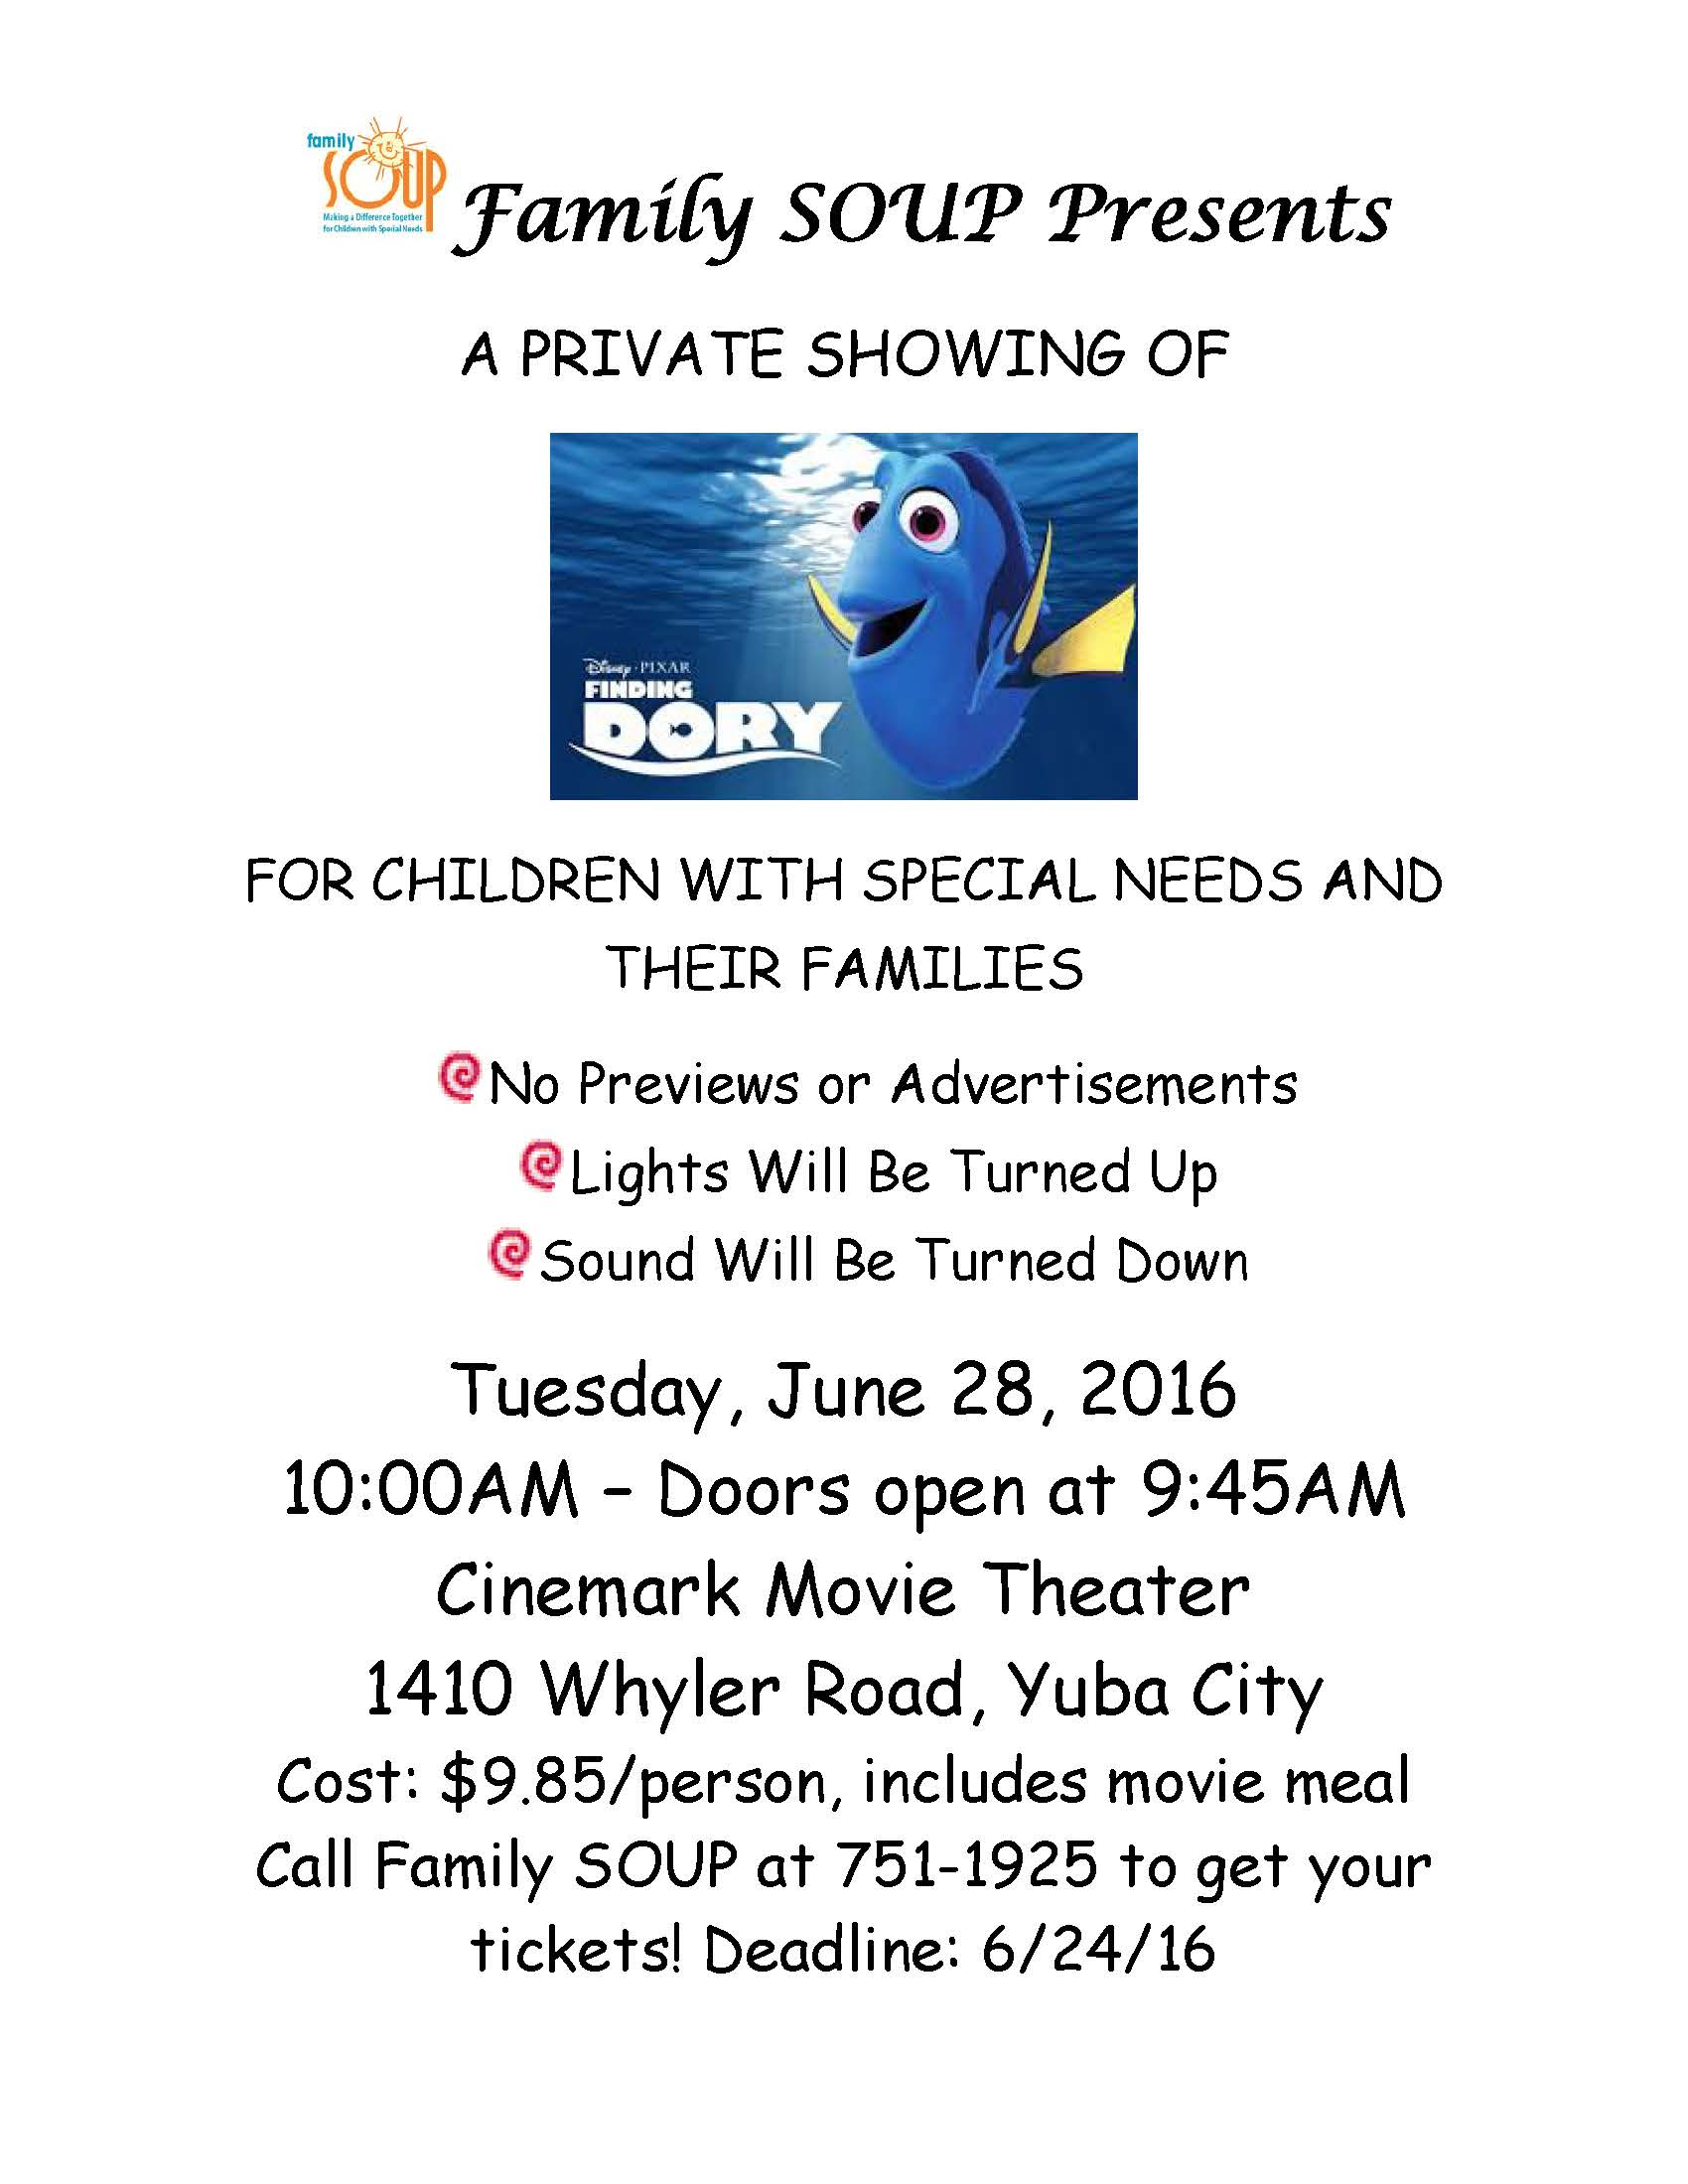 PRIVATE SHOWING OF Finding Dory